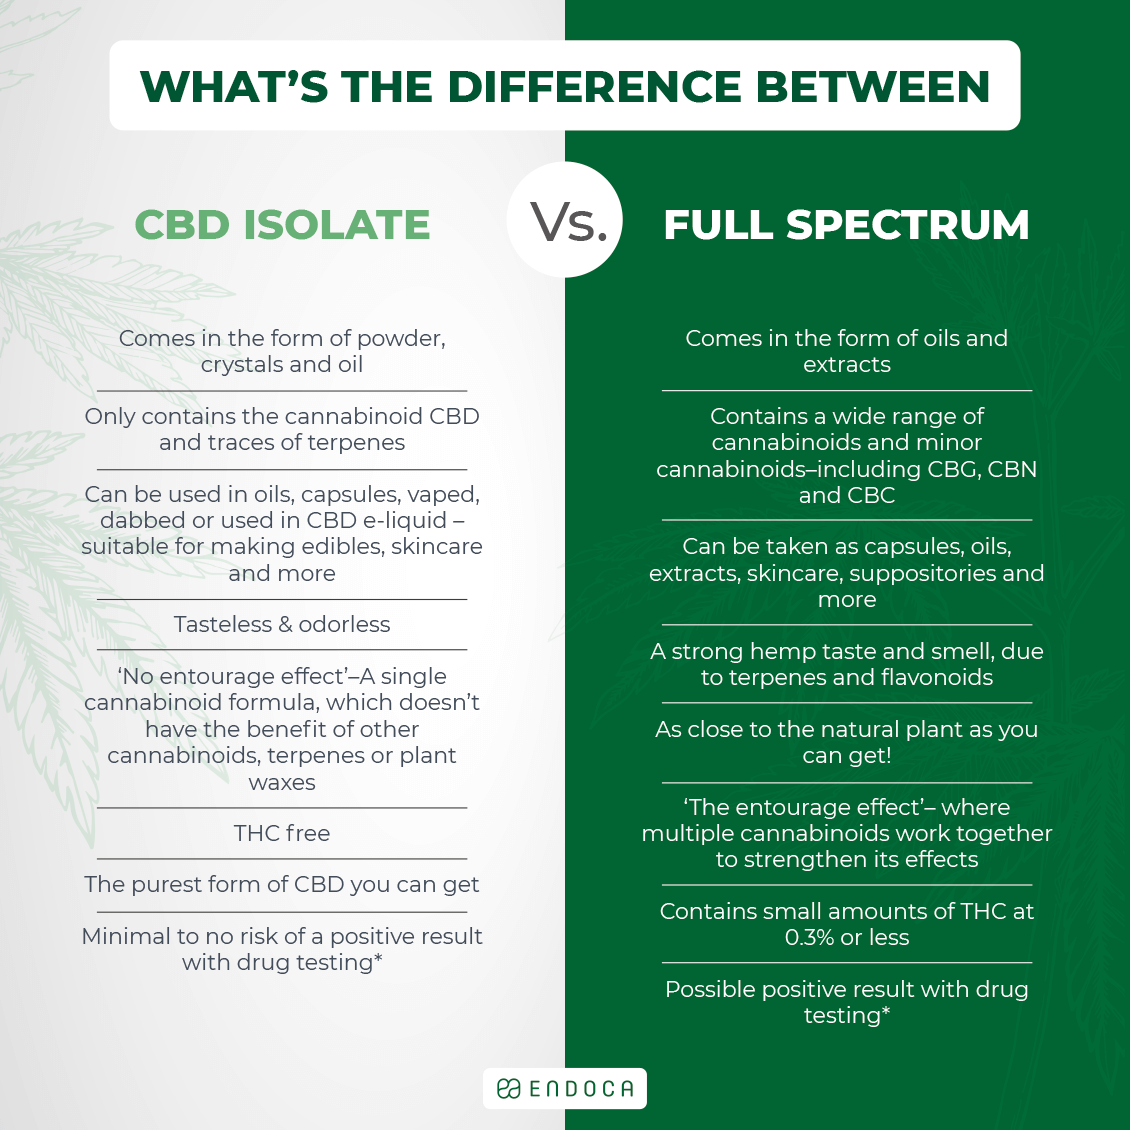 CBD isolate vs full spectrum CBD